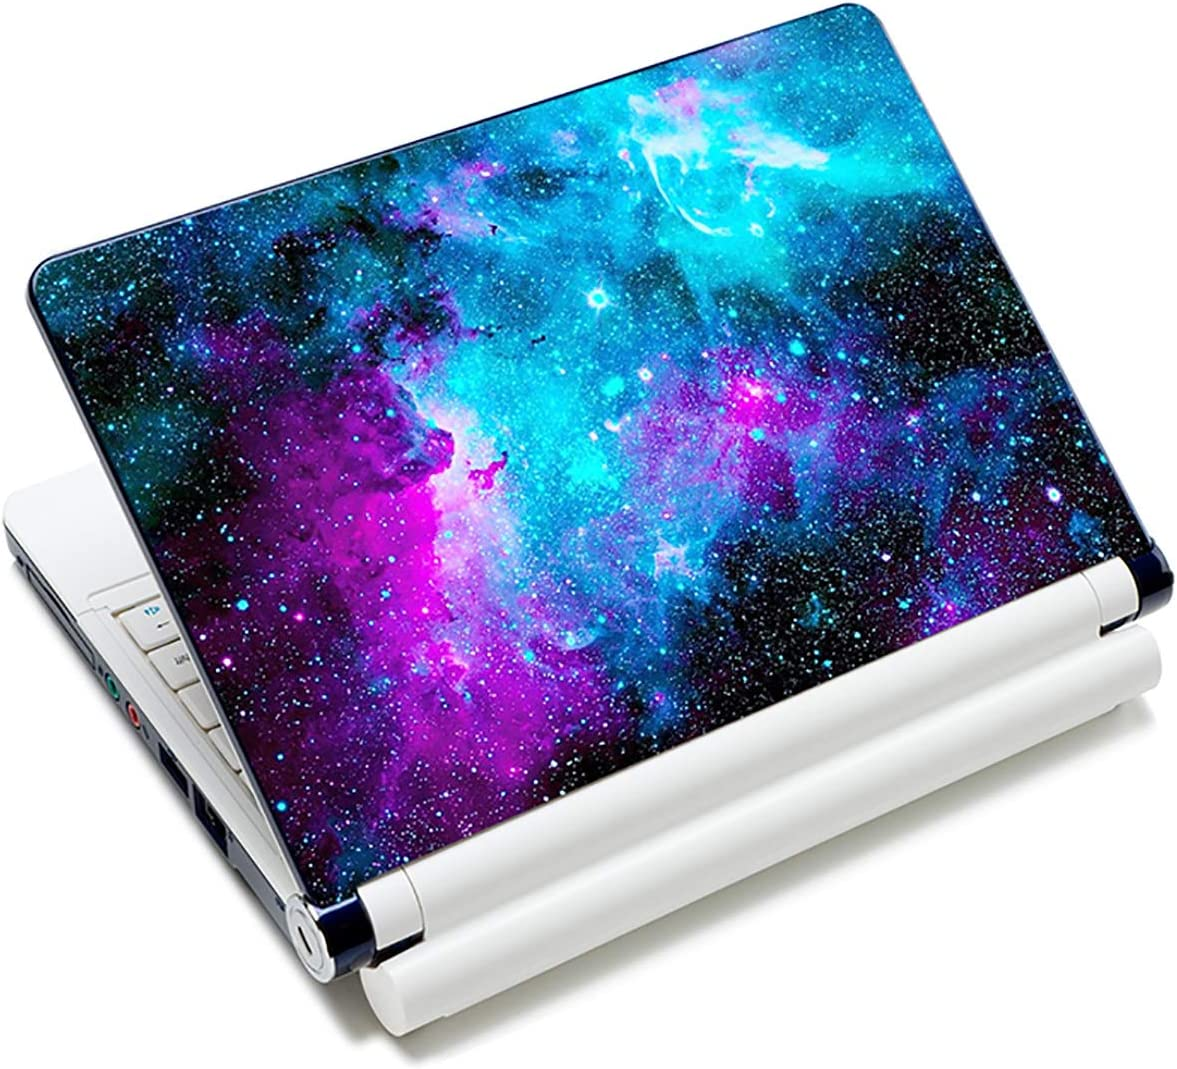 "Laptop Skin Sticker Decal,12"" 13"" 13.3"" 14"" 15"" 15.4"" 15.6 inch Laptop Vinyl Skin Sticker Cover Art Protector Notebook PC (Free 2 Wrist Pad Included), Decorative Waterproof Removable, Nebula Galaxy"